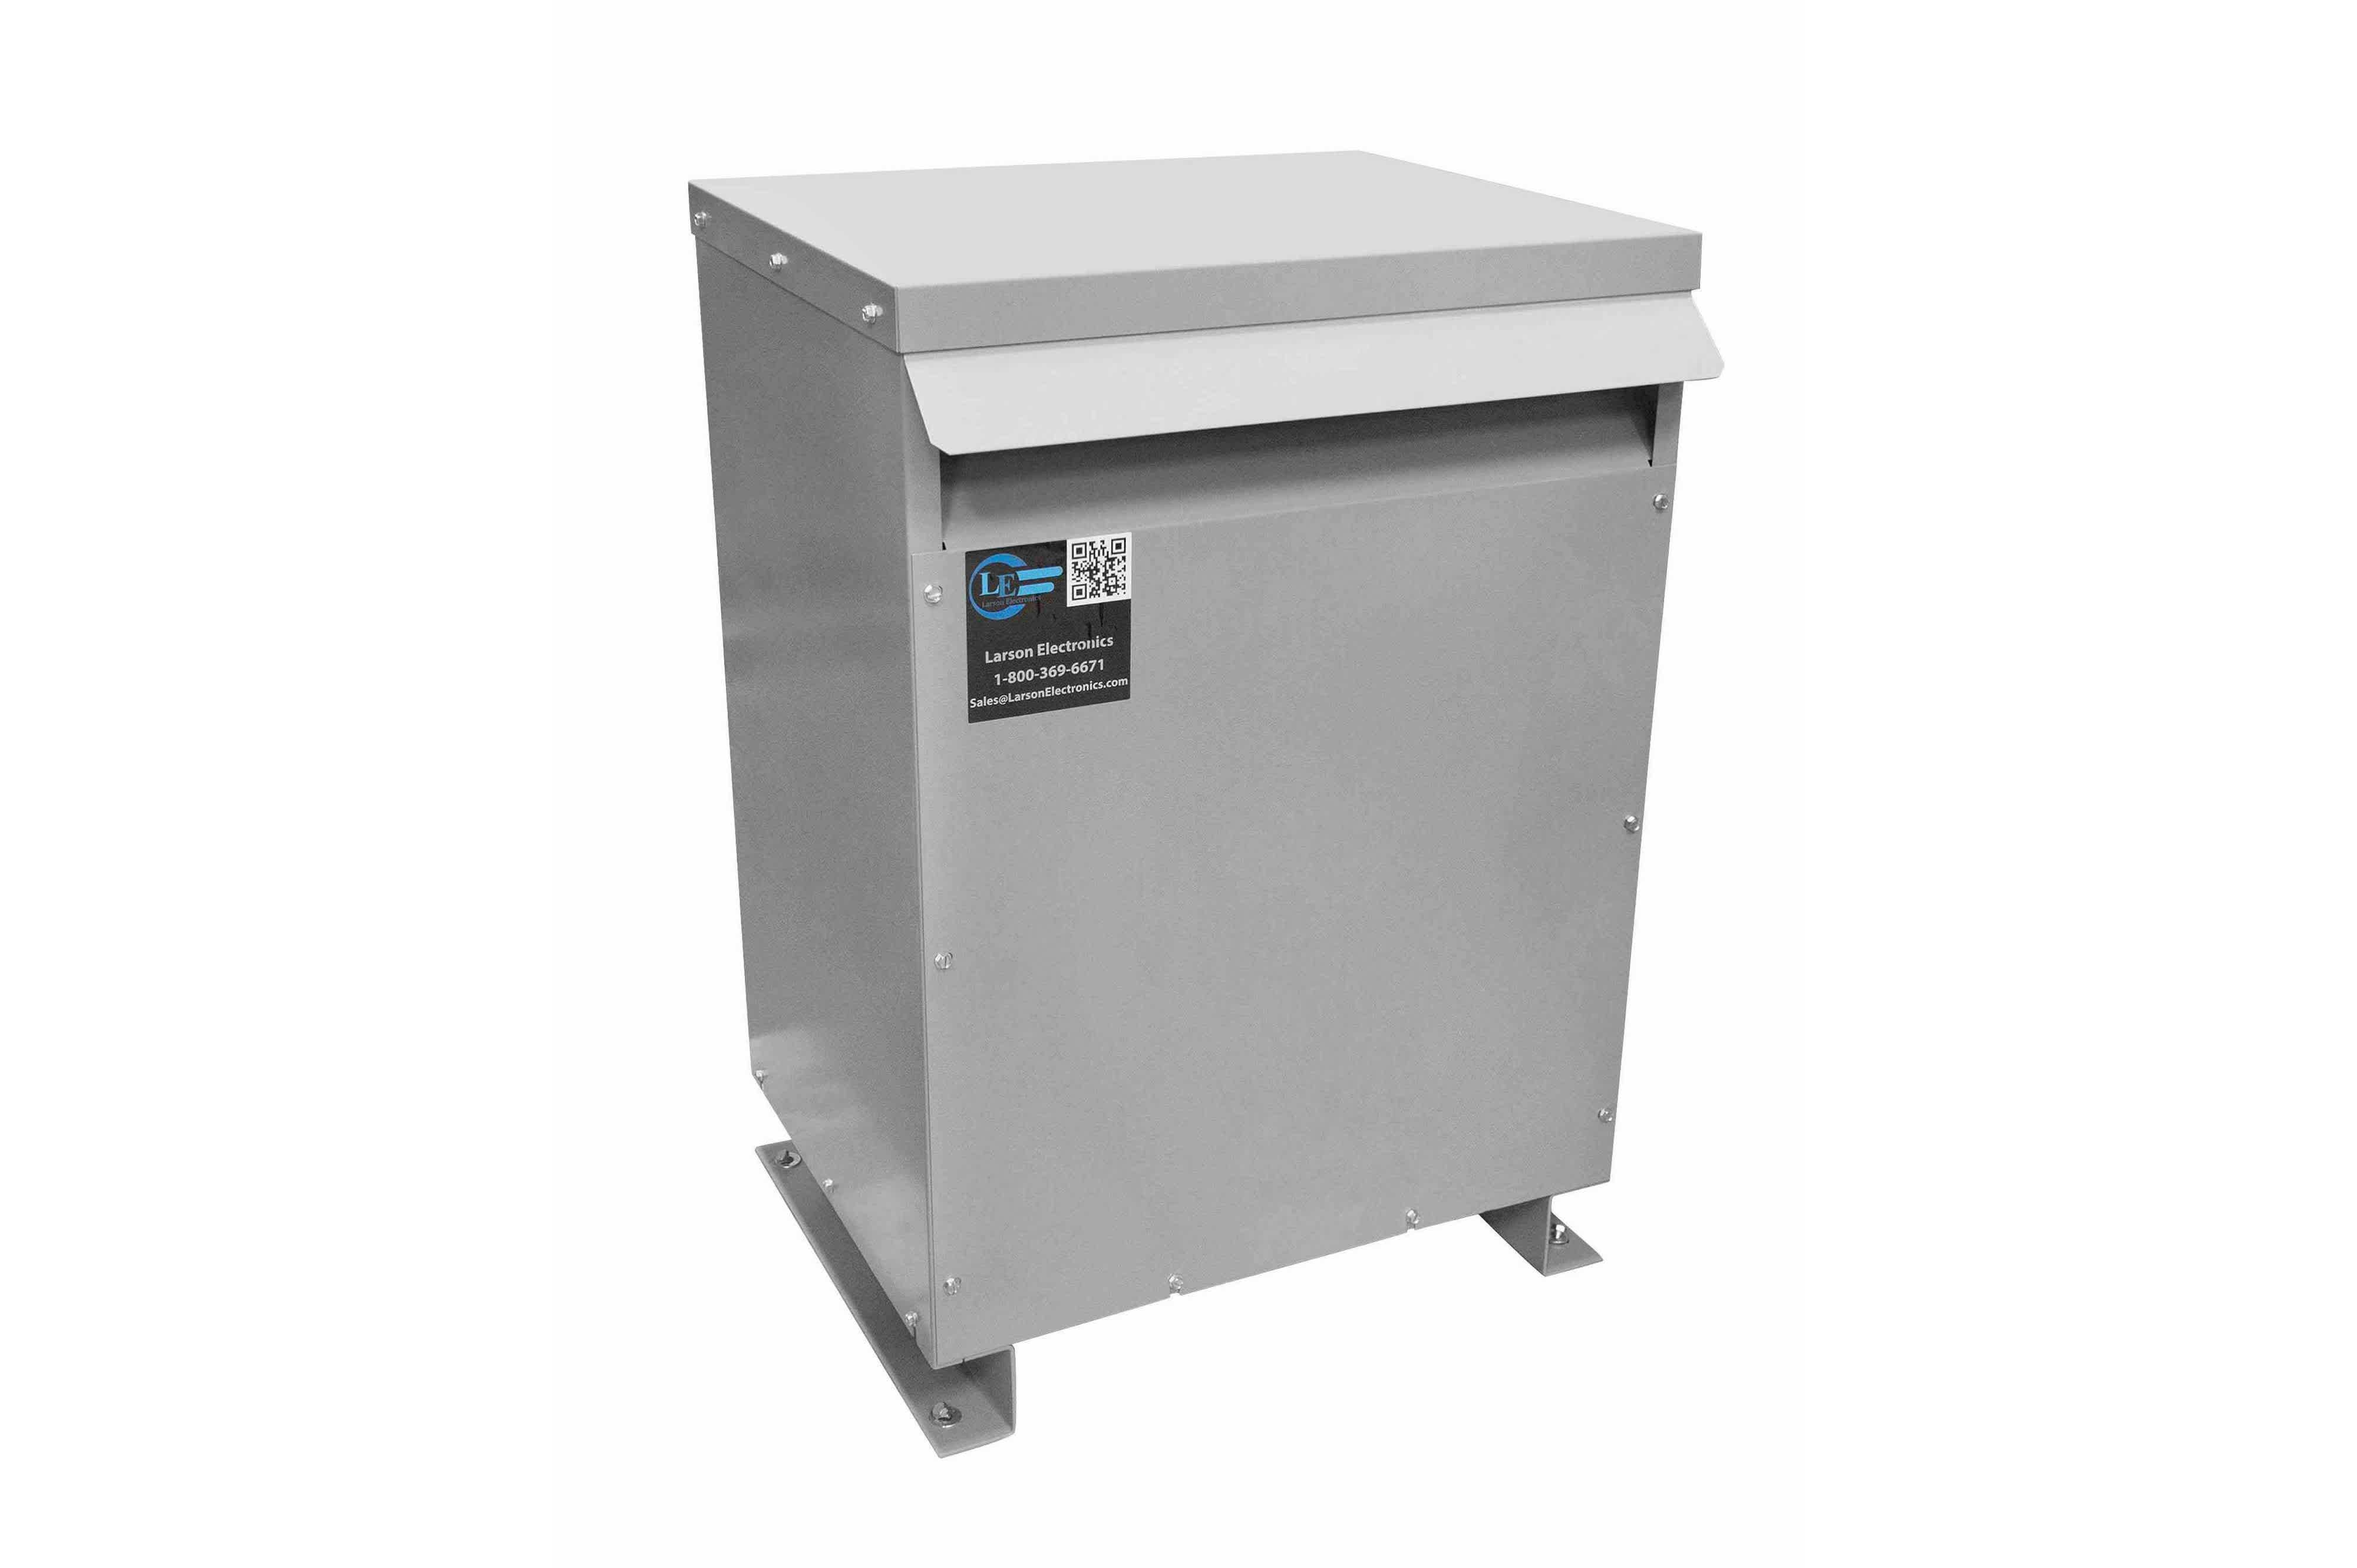 175 kVA 3PH Isolation Transformer, 440V Delta Primary, 208V Delta Secondary, N3R, Ventilated, 60 Hz